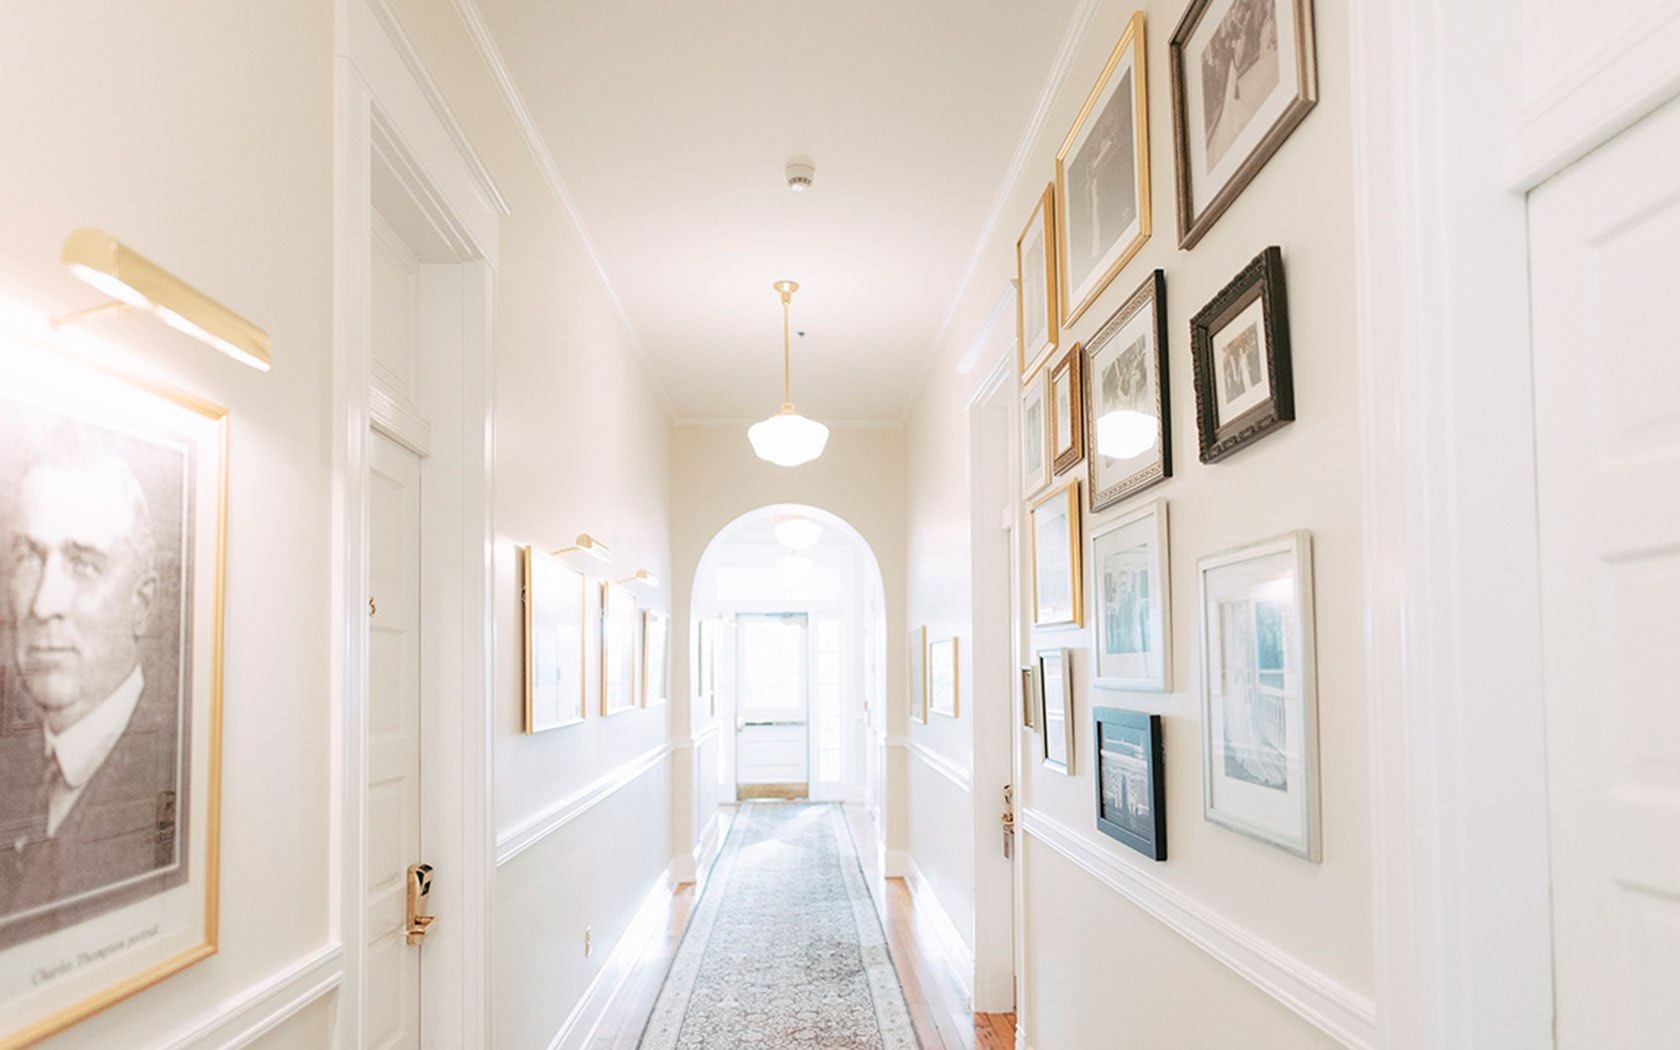 White hallway in hotel with frames hung